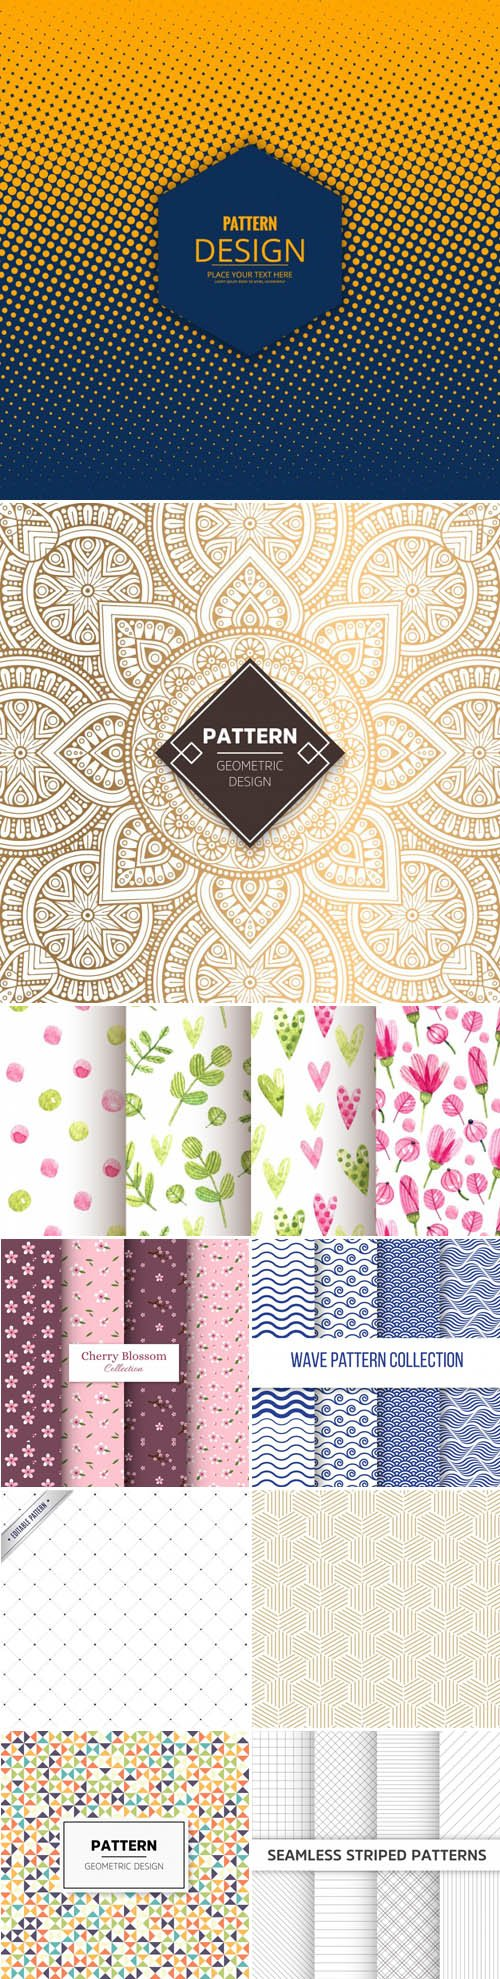 30 Vector Patterns Collection